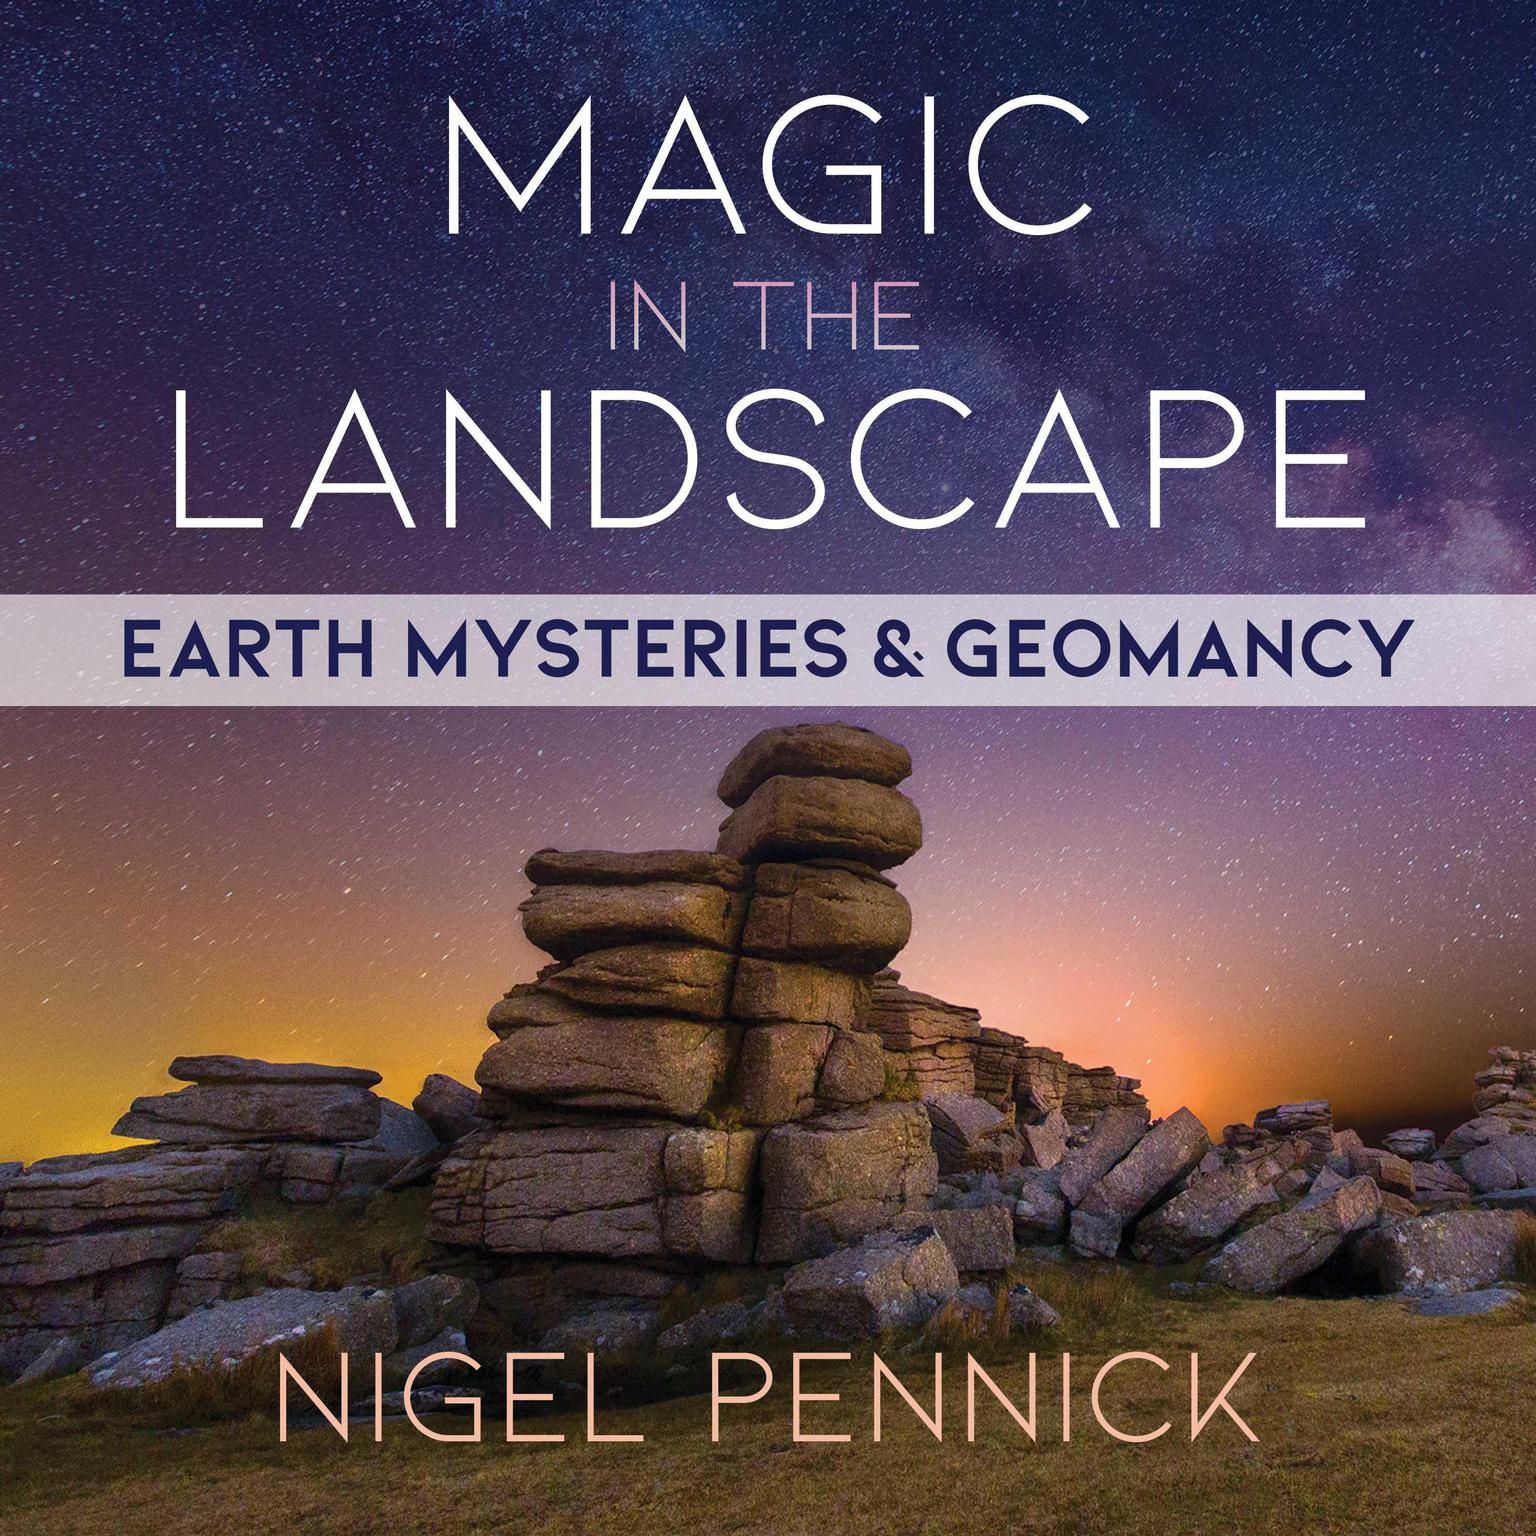 Magic in the Landscape: Earth Mysteries and Geomancy Audiobook, by Nigel Pennick